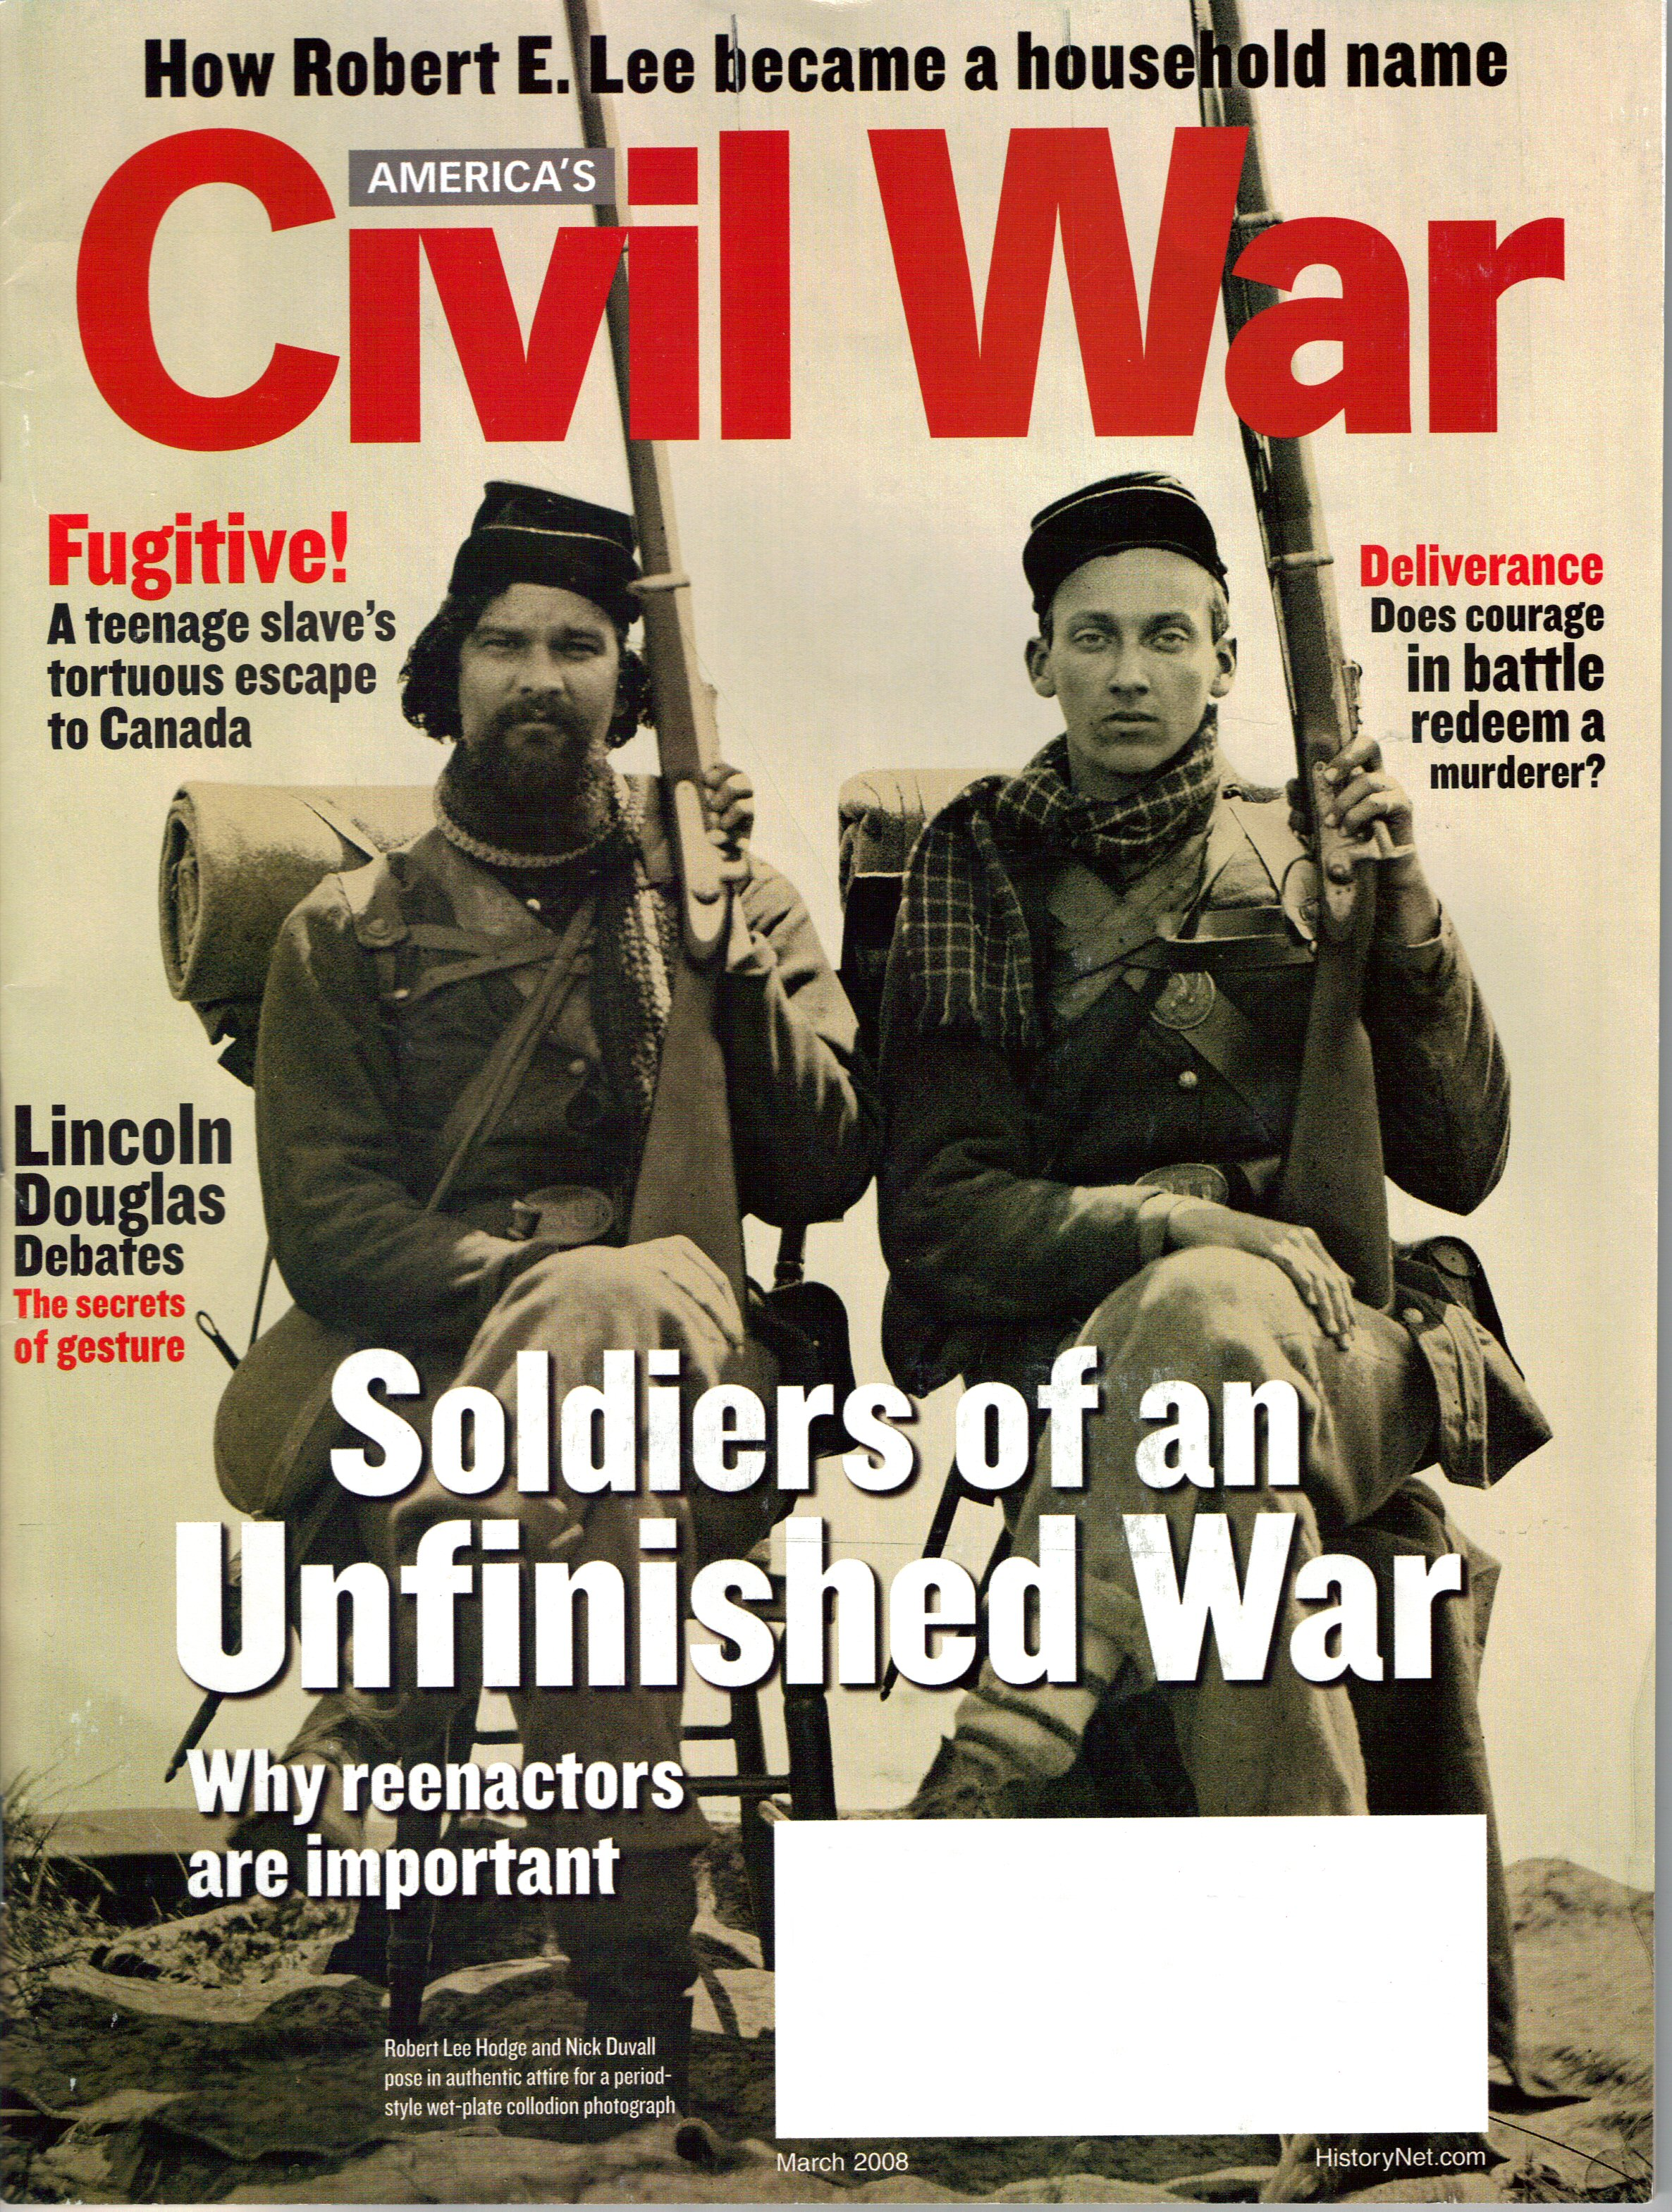 Americas Civil War, Volum 21, Number 1 (March 2008)